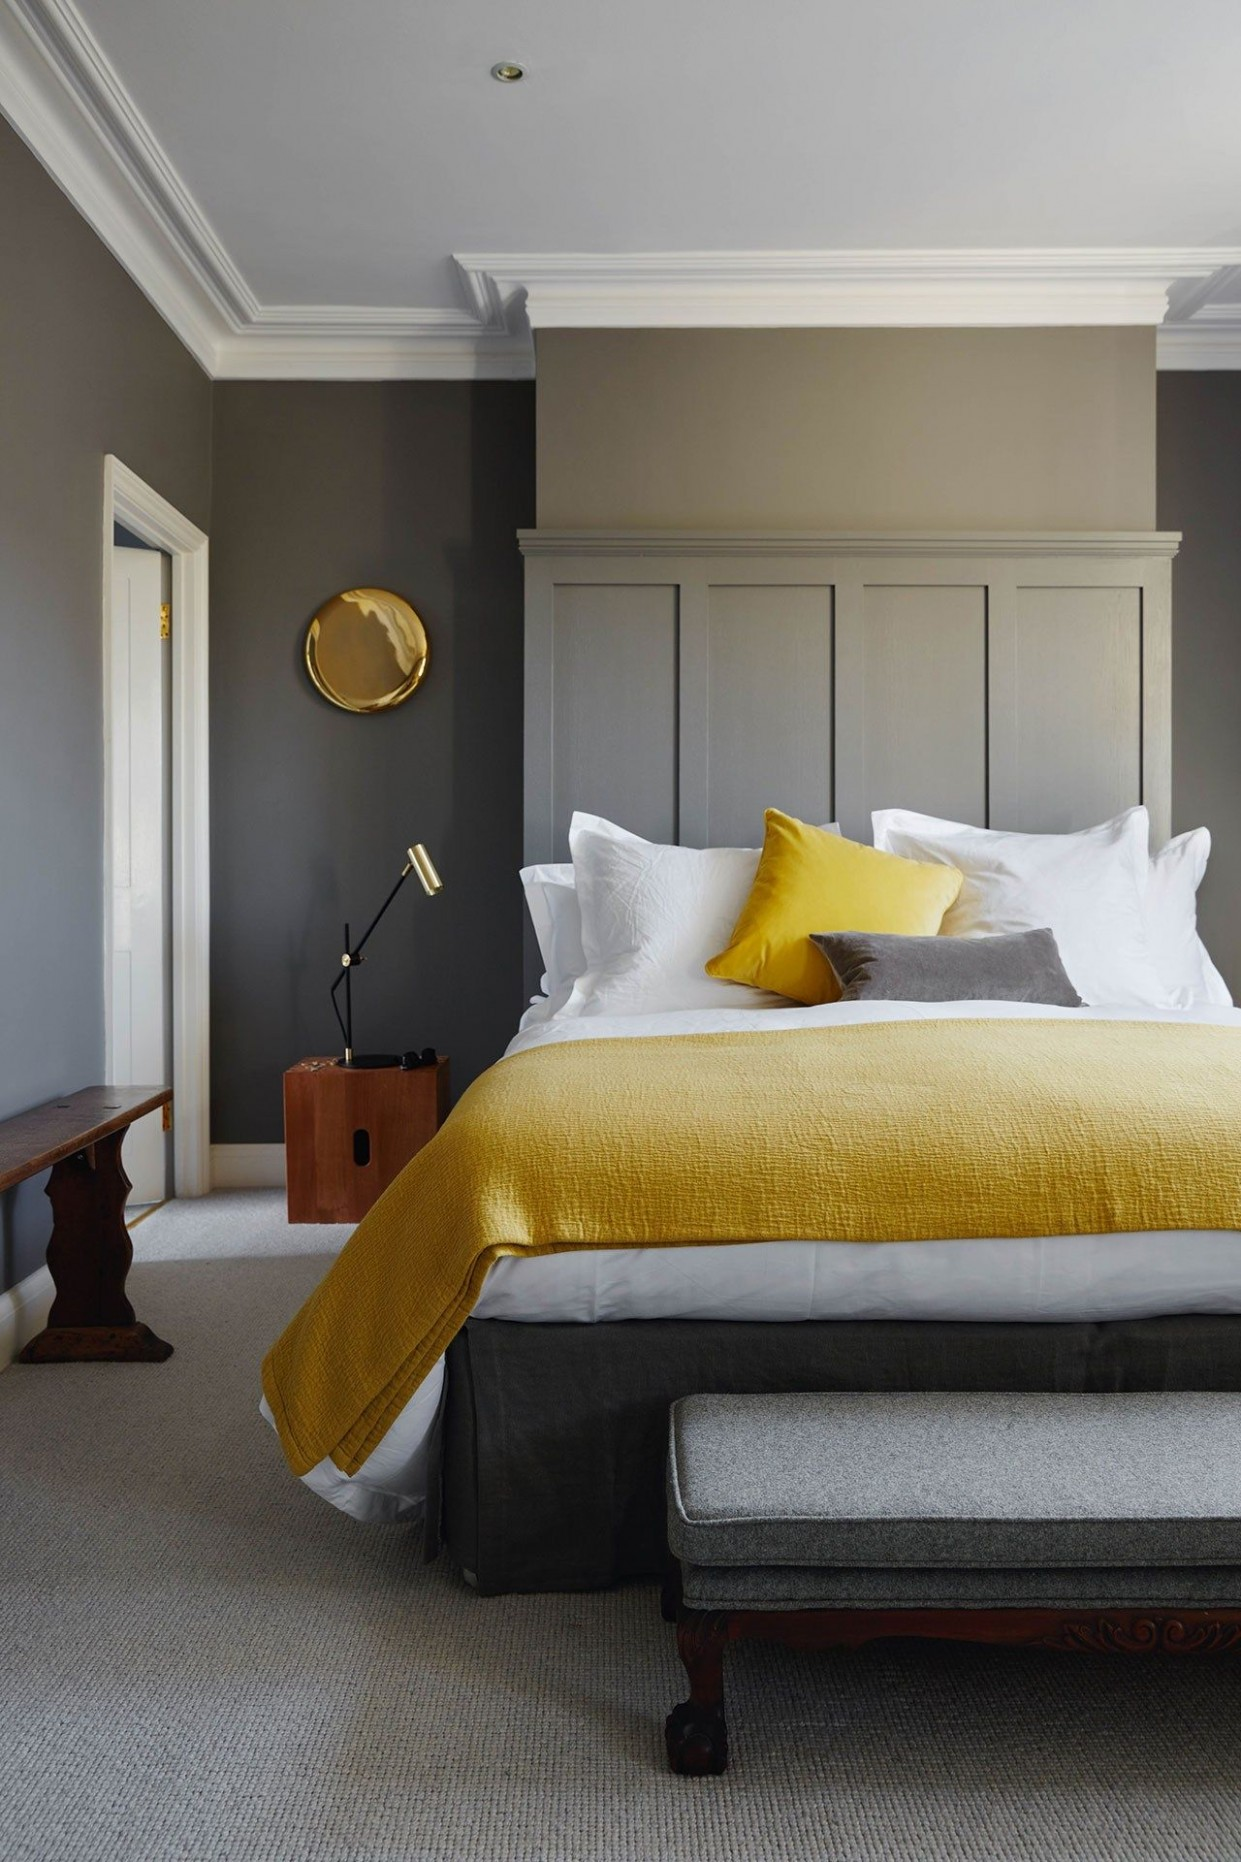 Bedroom ideas  Home decor bedroom, Remodel bedroom, Bedroom interior - Bedroom Ideas Mustard